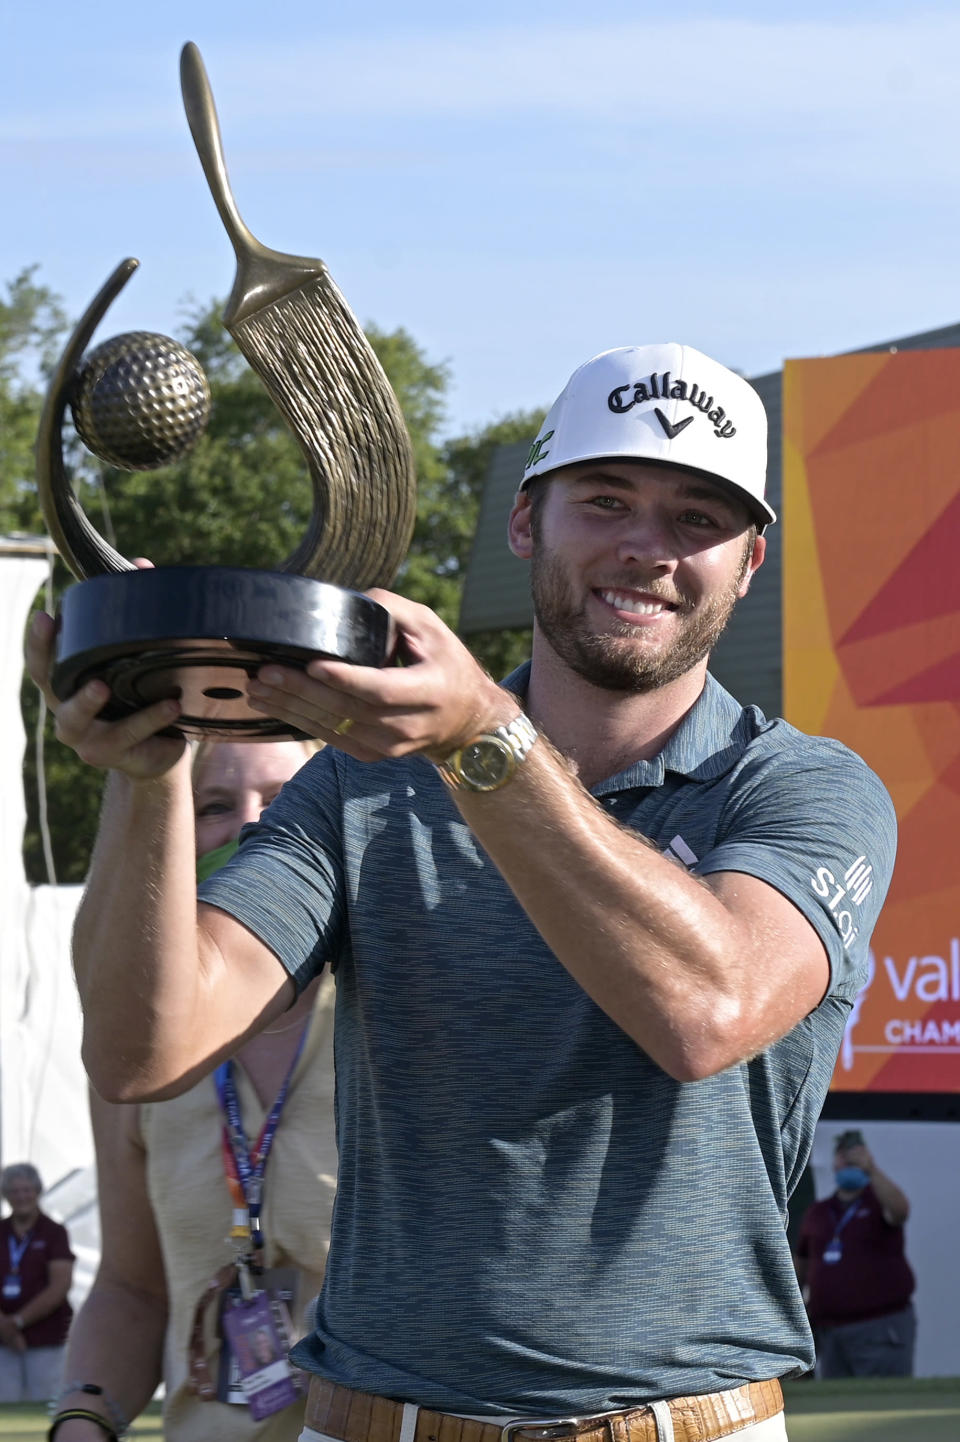 Sam Burns holds the championship trophy after winning the Valspar Championship golf tournament, Sunday, May 2, 2021, in Palm Harbor, Fla. (AP Photo/Phelan M. Ebenhack)